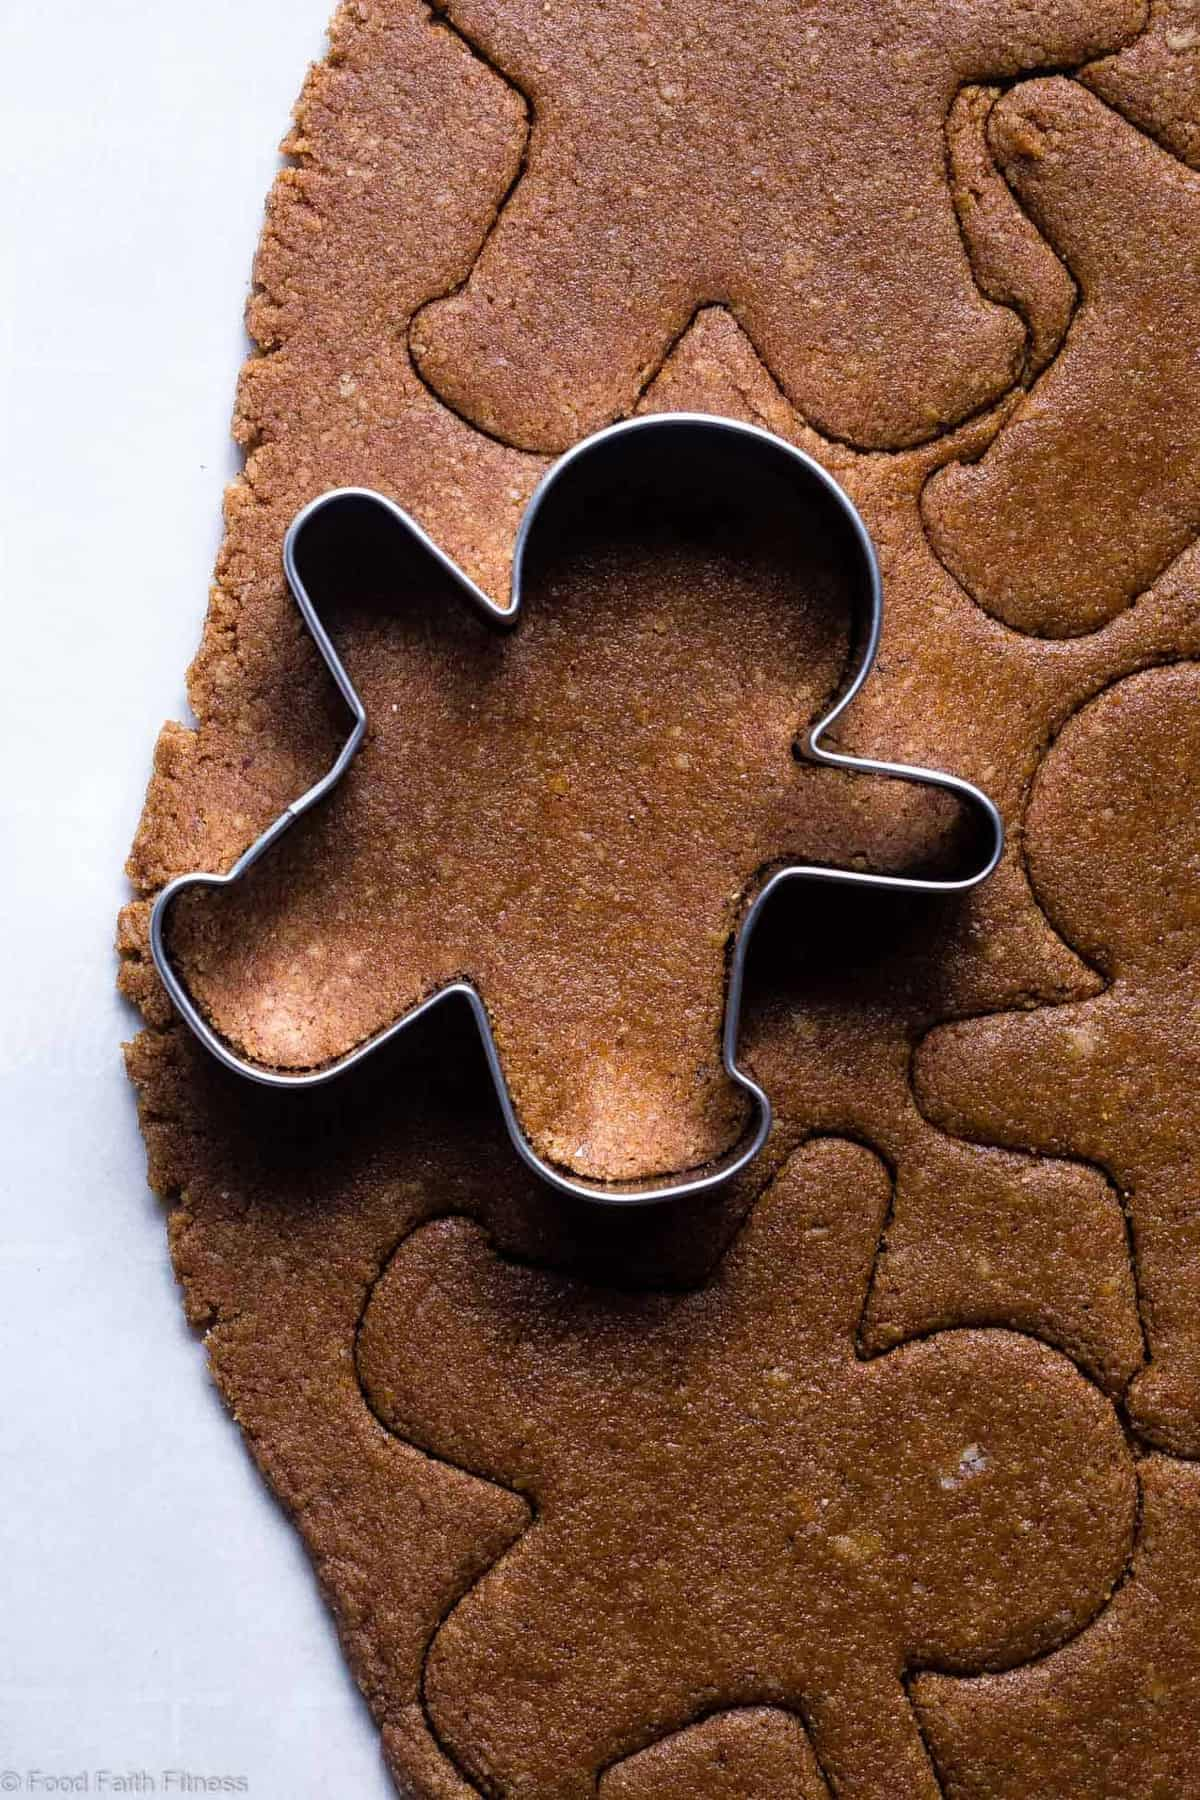 Paleo Healthy Gluten Free Gingerbread Cookies - This gluten free gingerbread cookie recipe is perfectly spicy, sweet and crispy! An easy, delicious holiday cookie that no one will know are healthy and gluten/grain/dairy/refined sugar free! | #Foodfaithfitness |